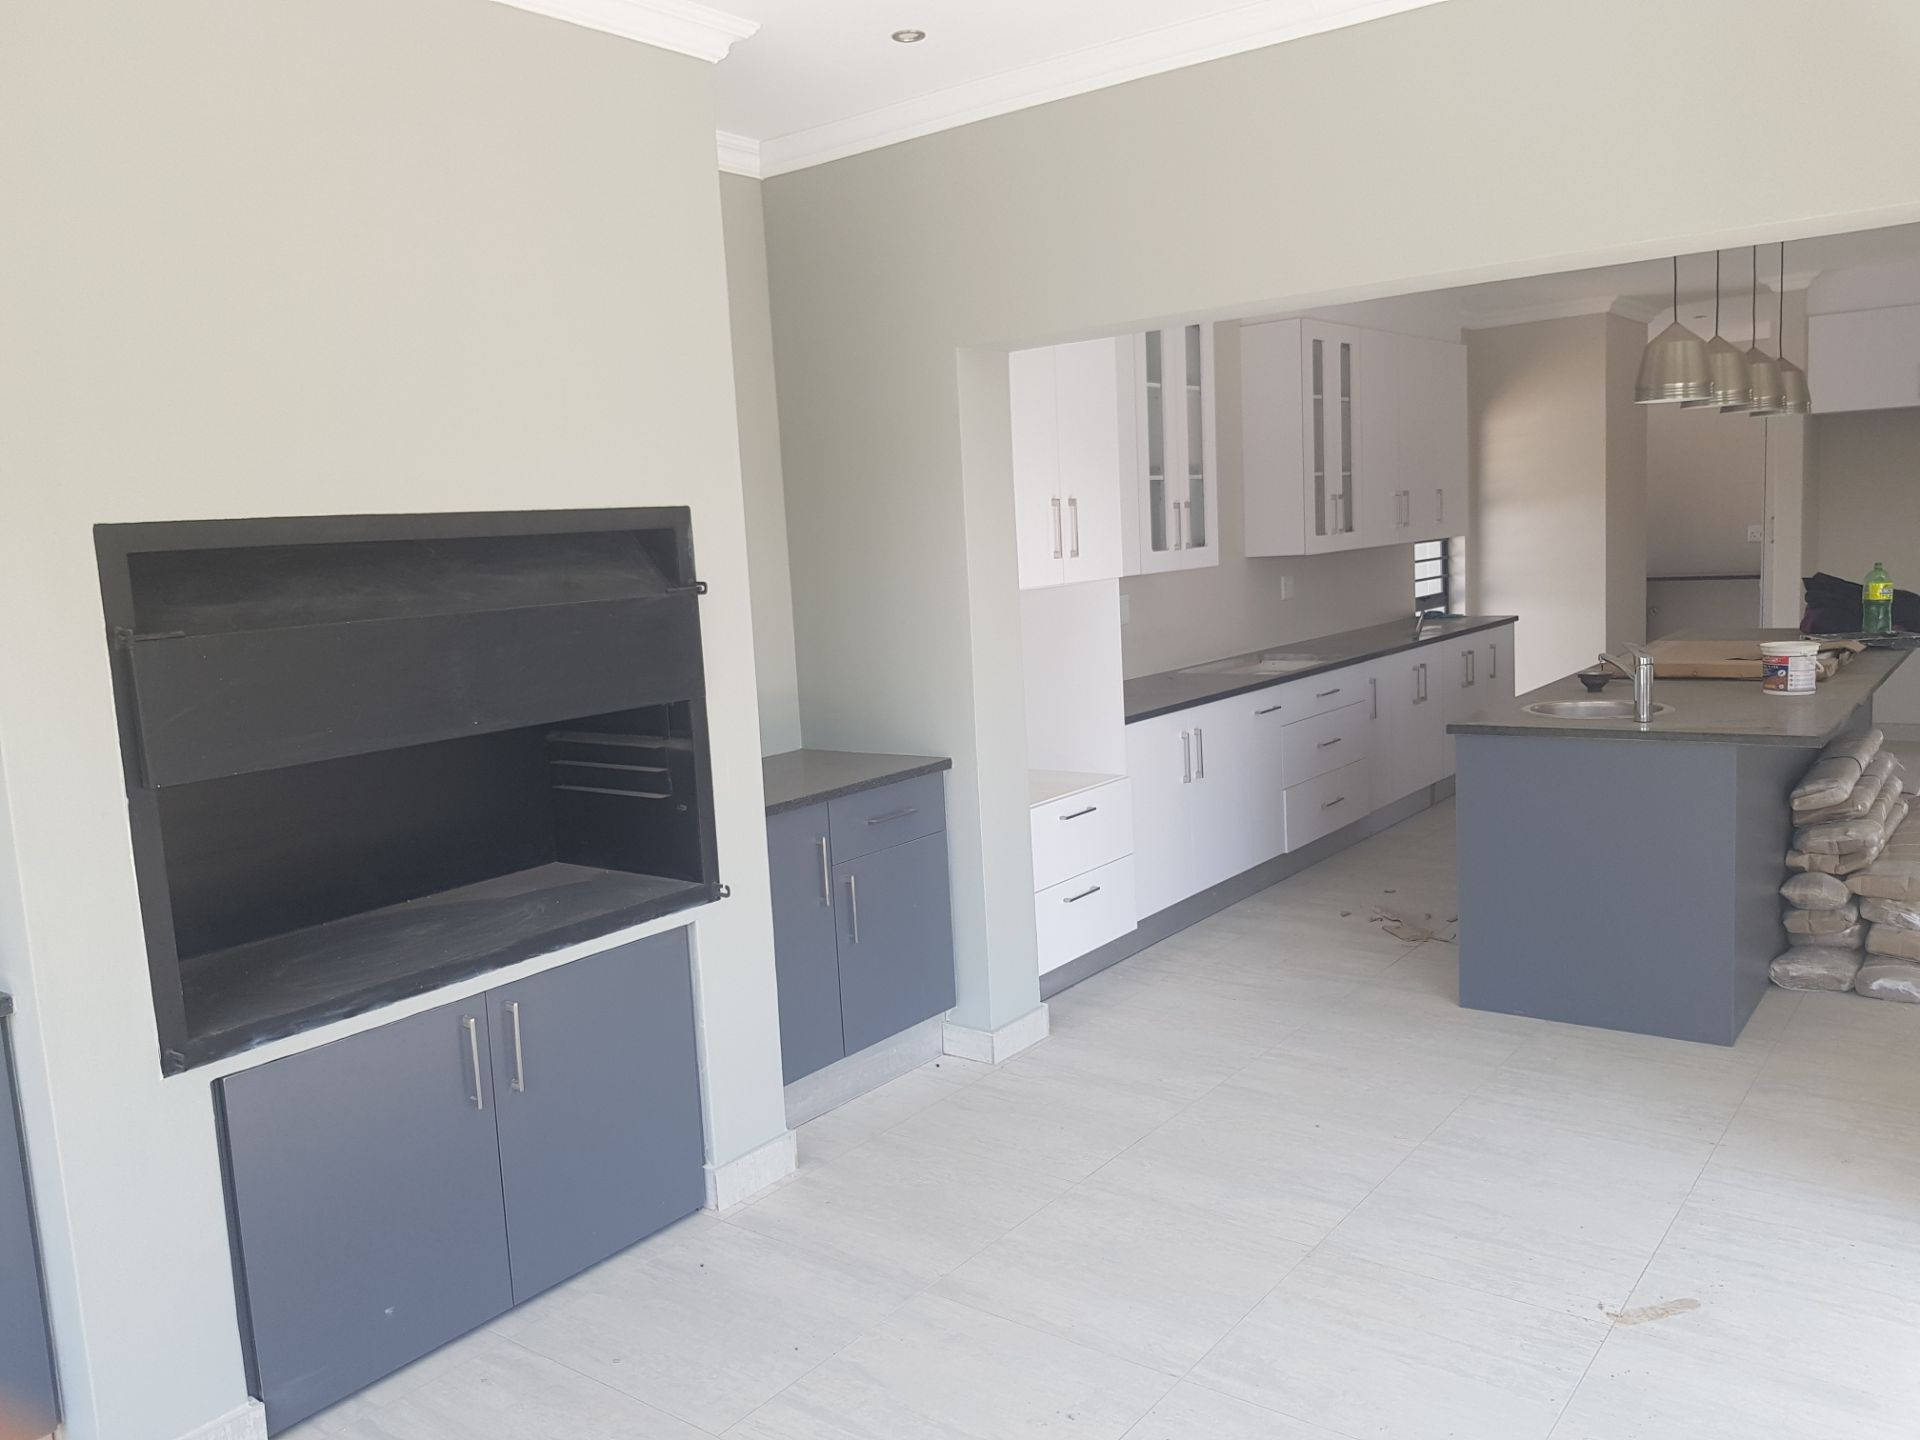 House in Lifestyle Estate - 20190920_130024.jpg